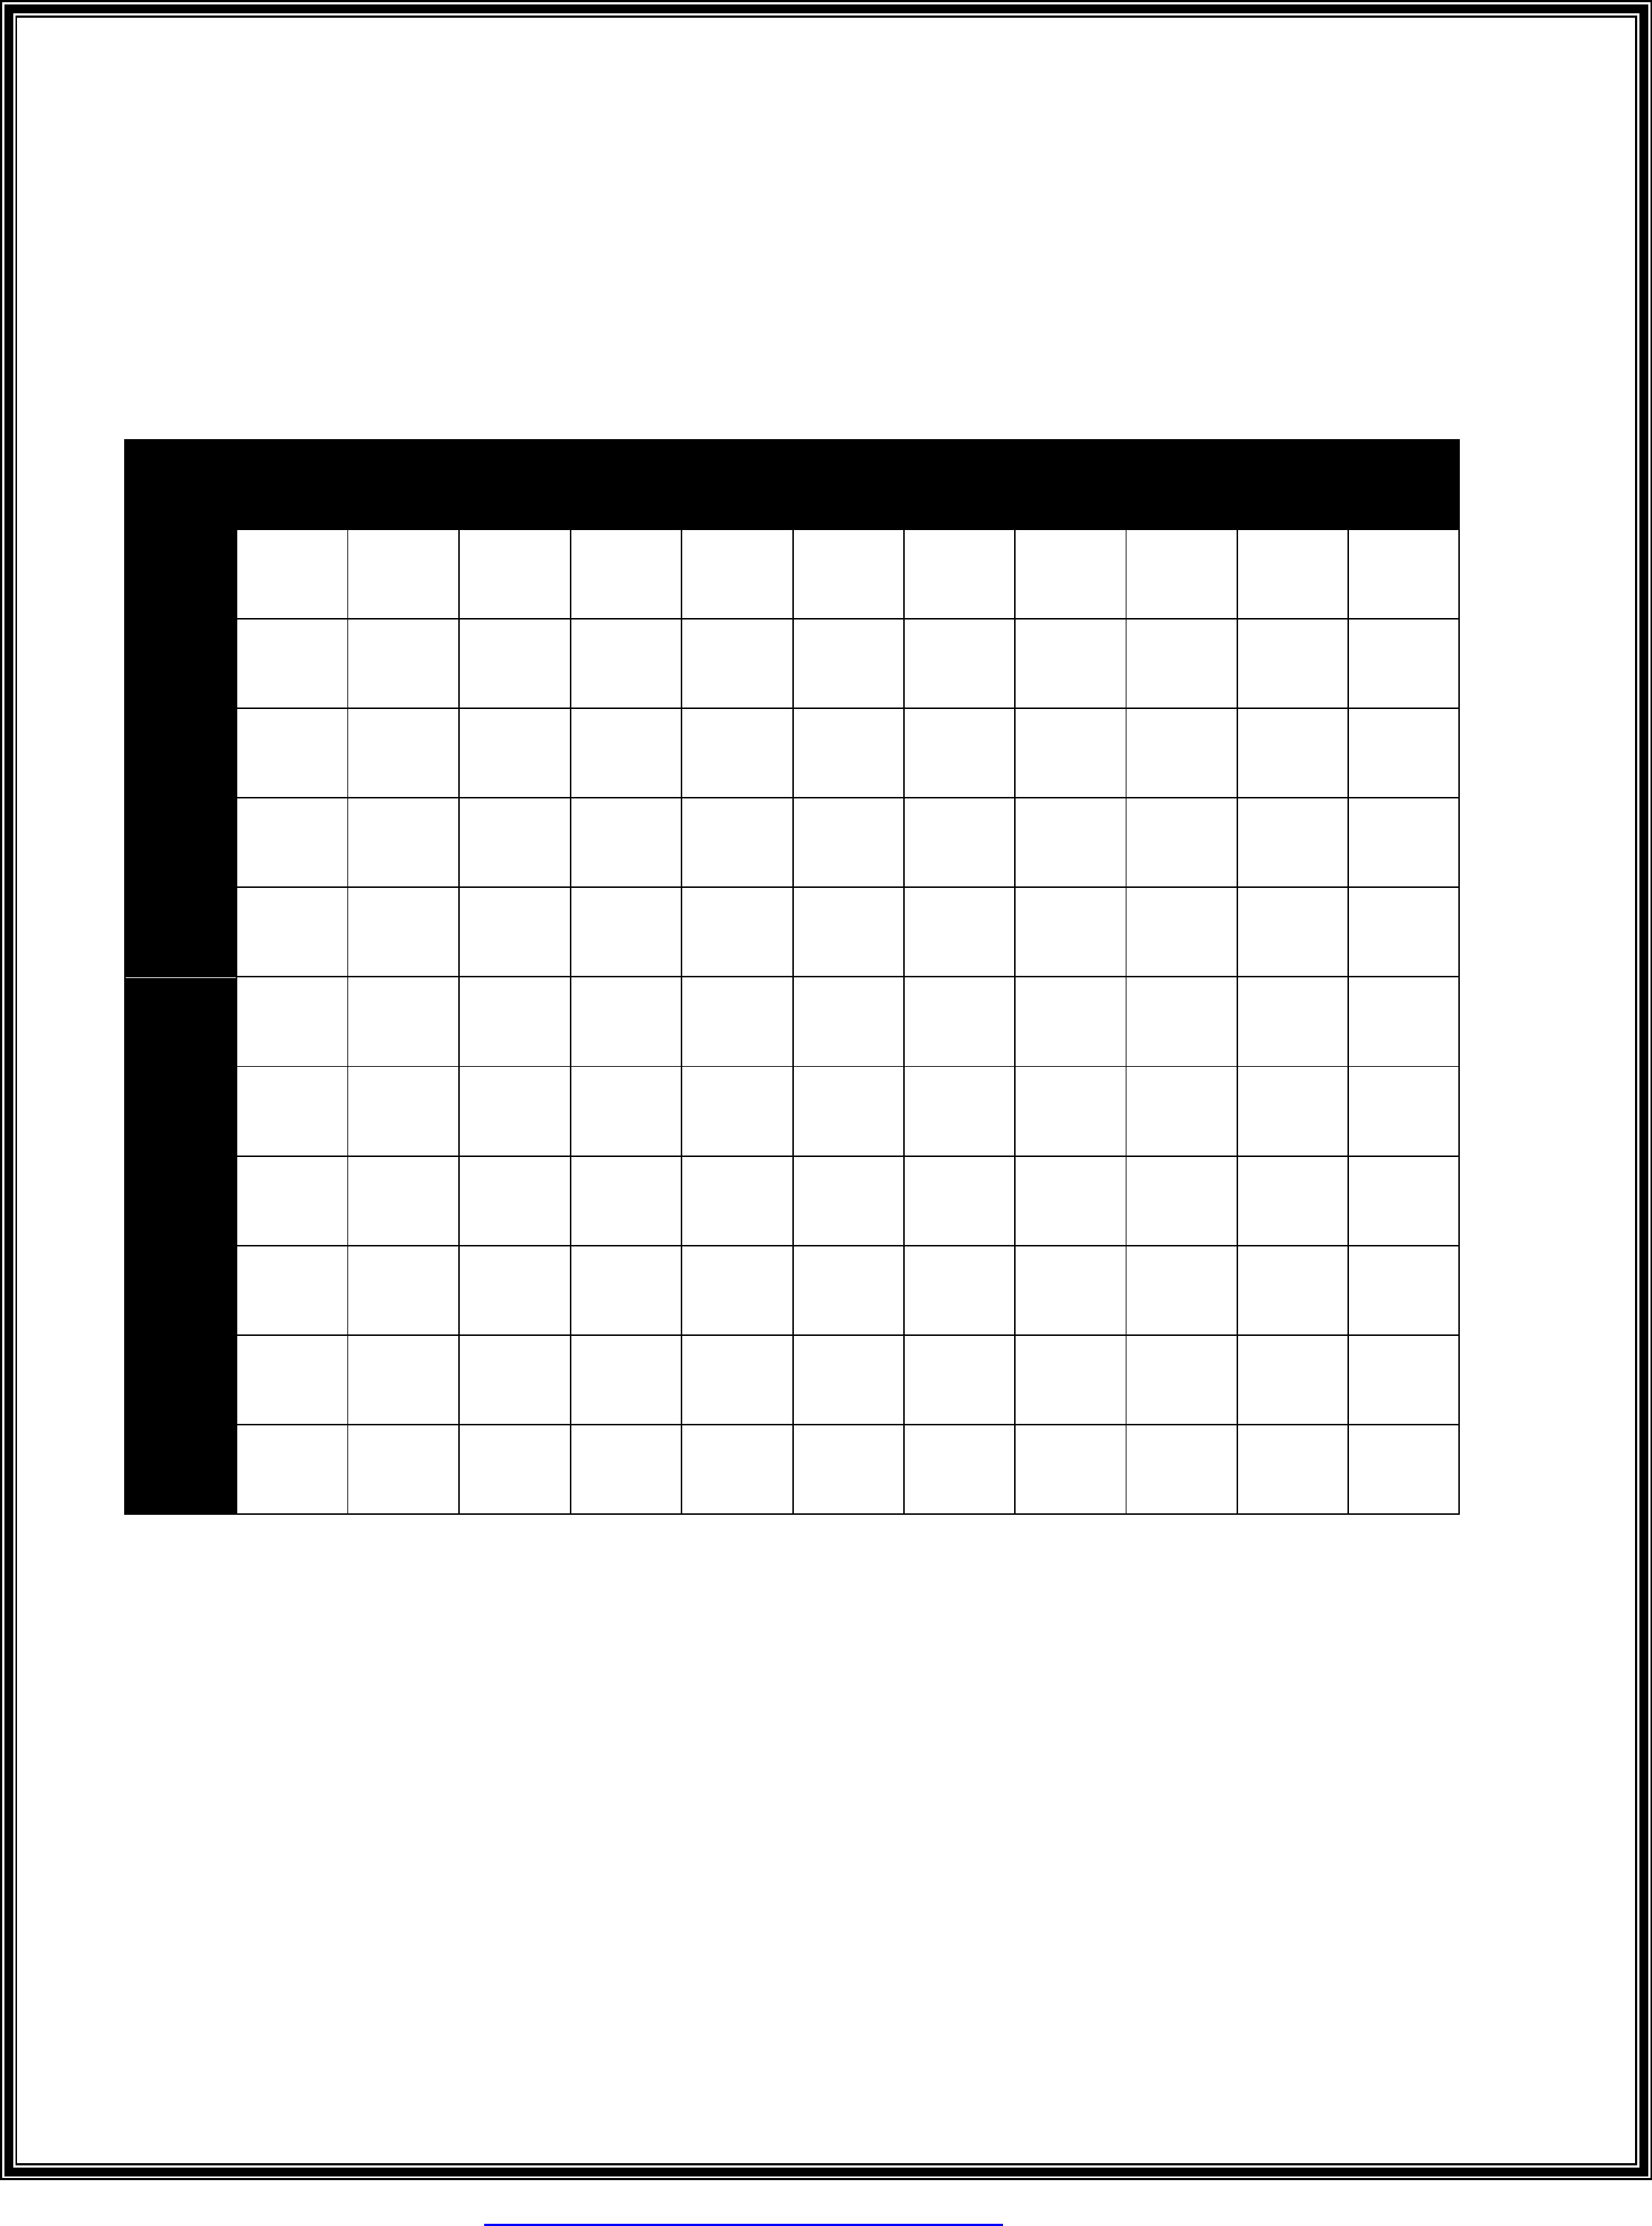 copc table f template - multiplication chart 0 12 blank blank multiplication